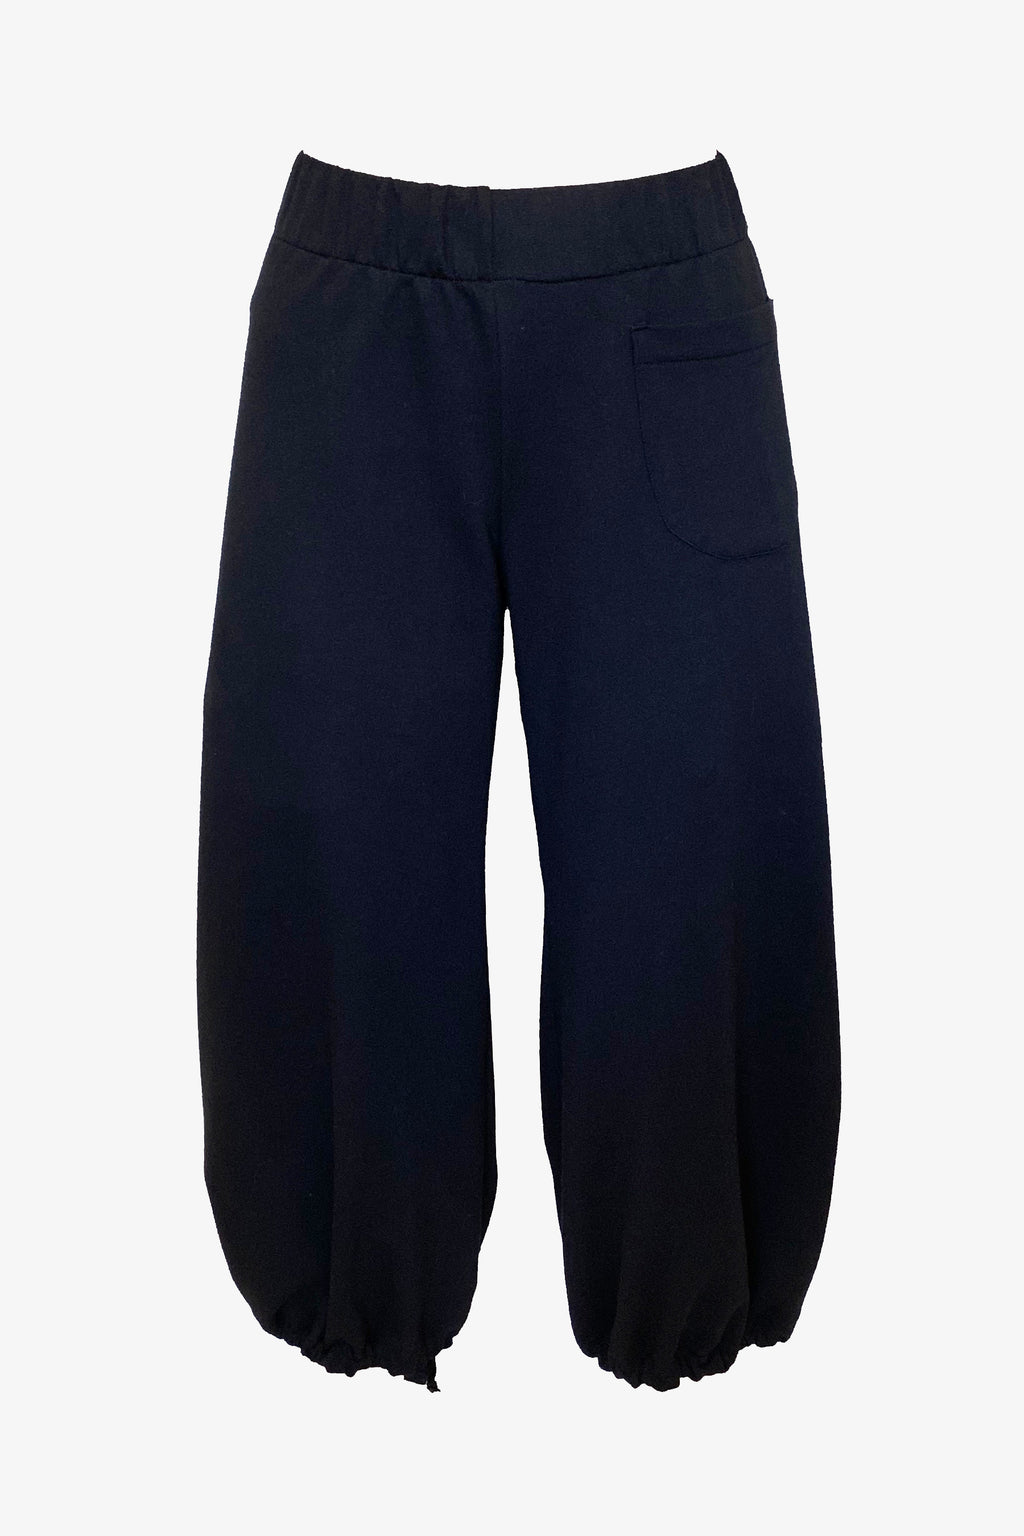 Boba Pants in Black Organic French Terry